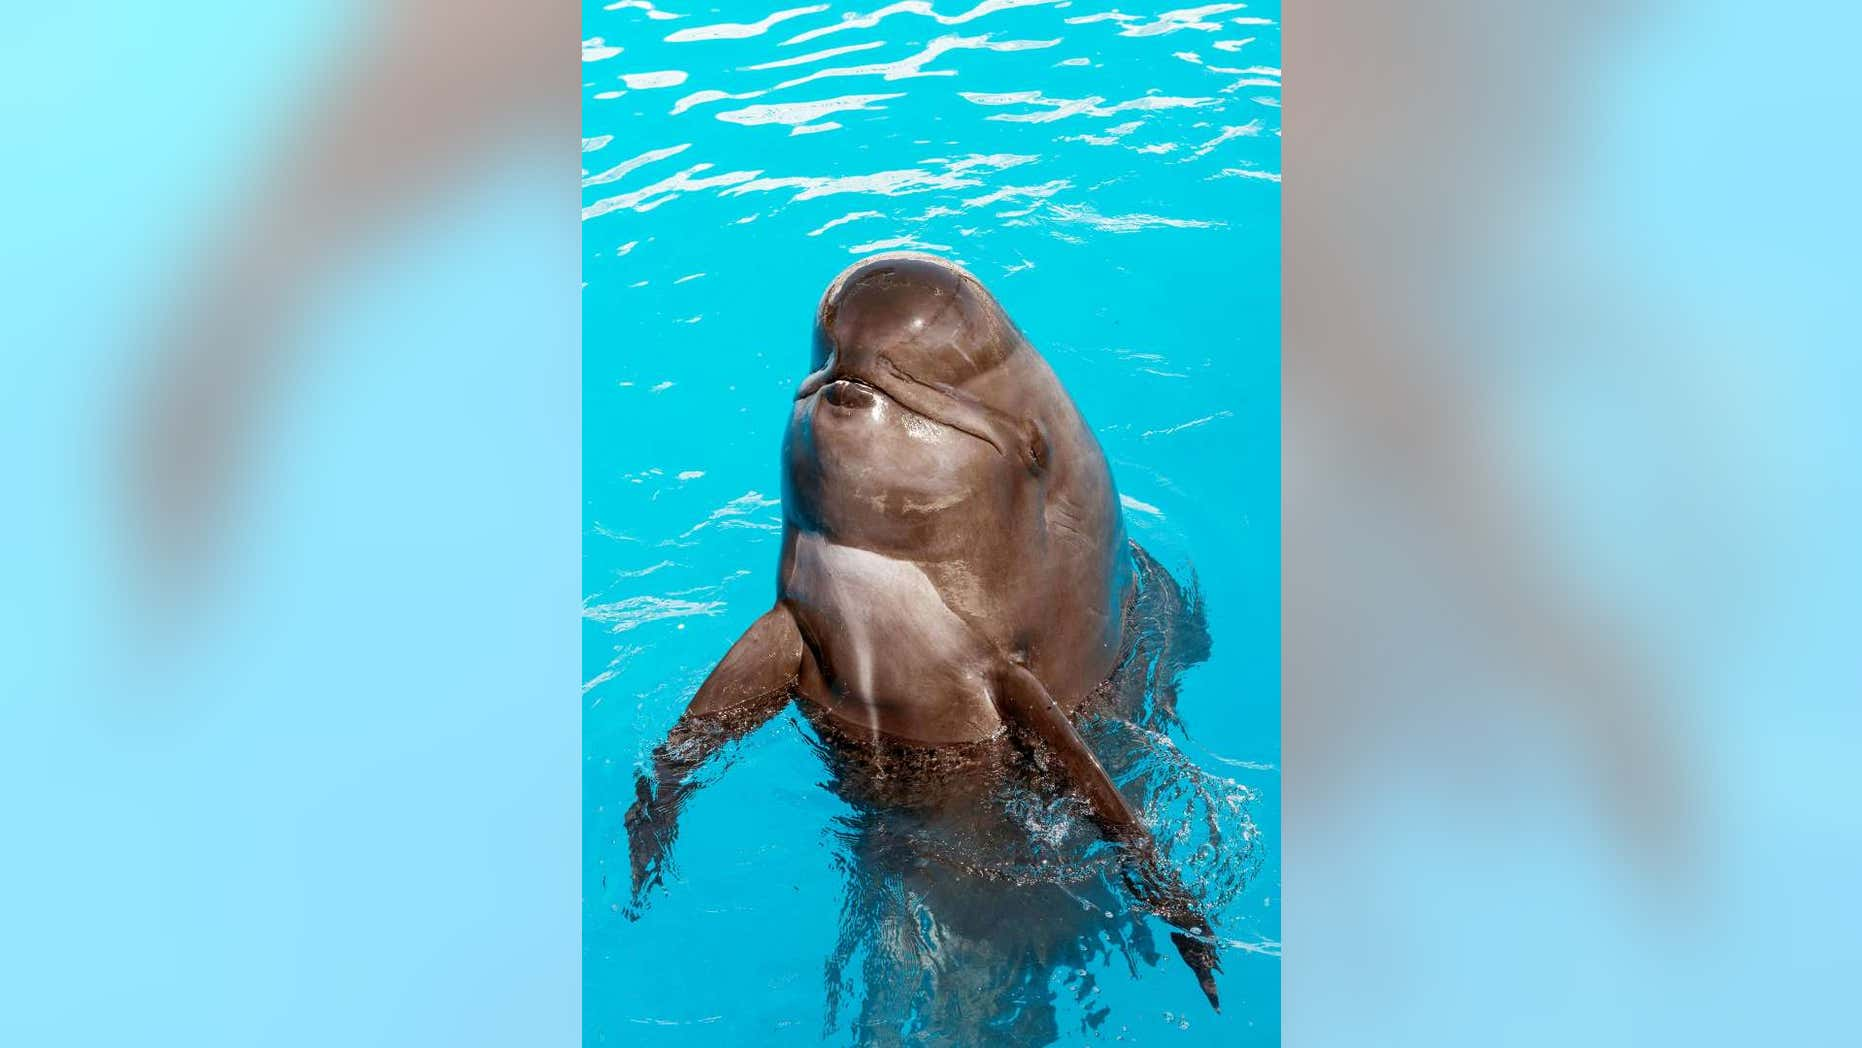 This undated photo provided by SeaWorld San Diego shows Bubbles, a short-finned pilot whale that lived at SeaWorld San Diego for nearly 30 years. The park reported that Bubbles died June 9. She was believed to be in her mid-50s.